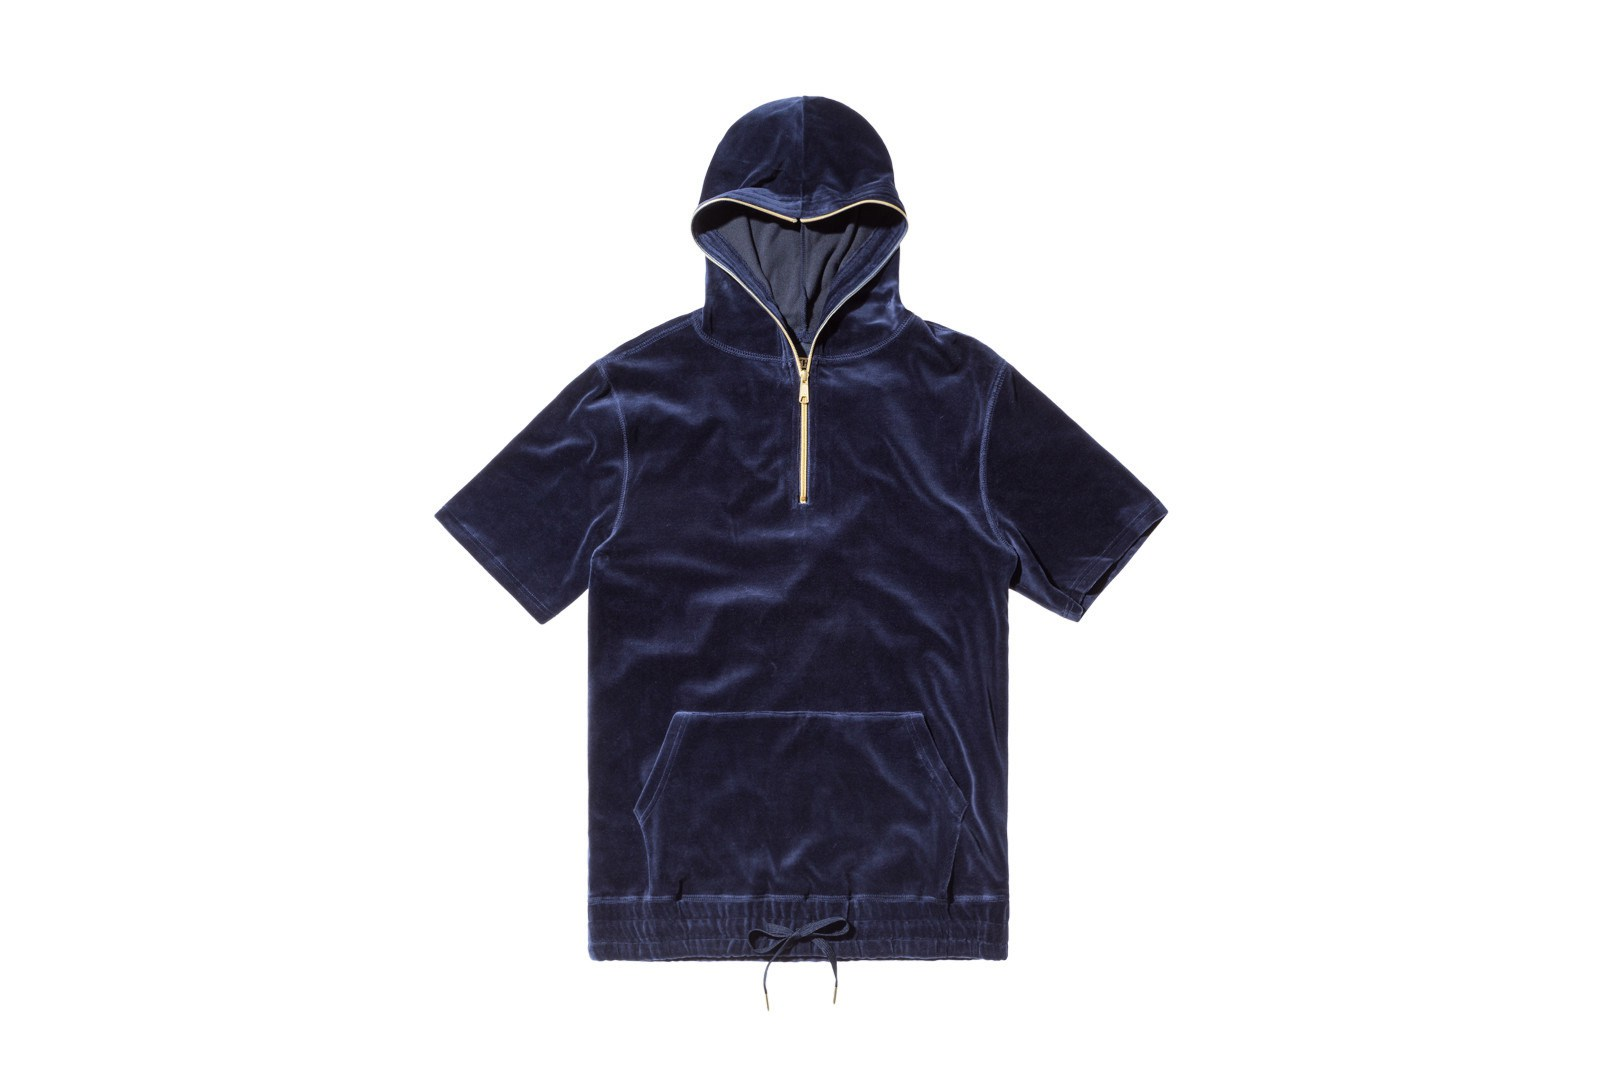 kith-special-velour-capsule-collection-2